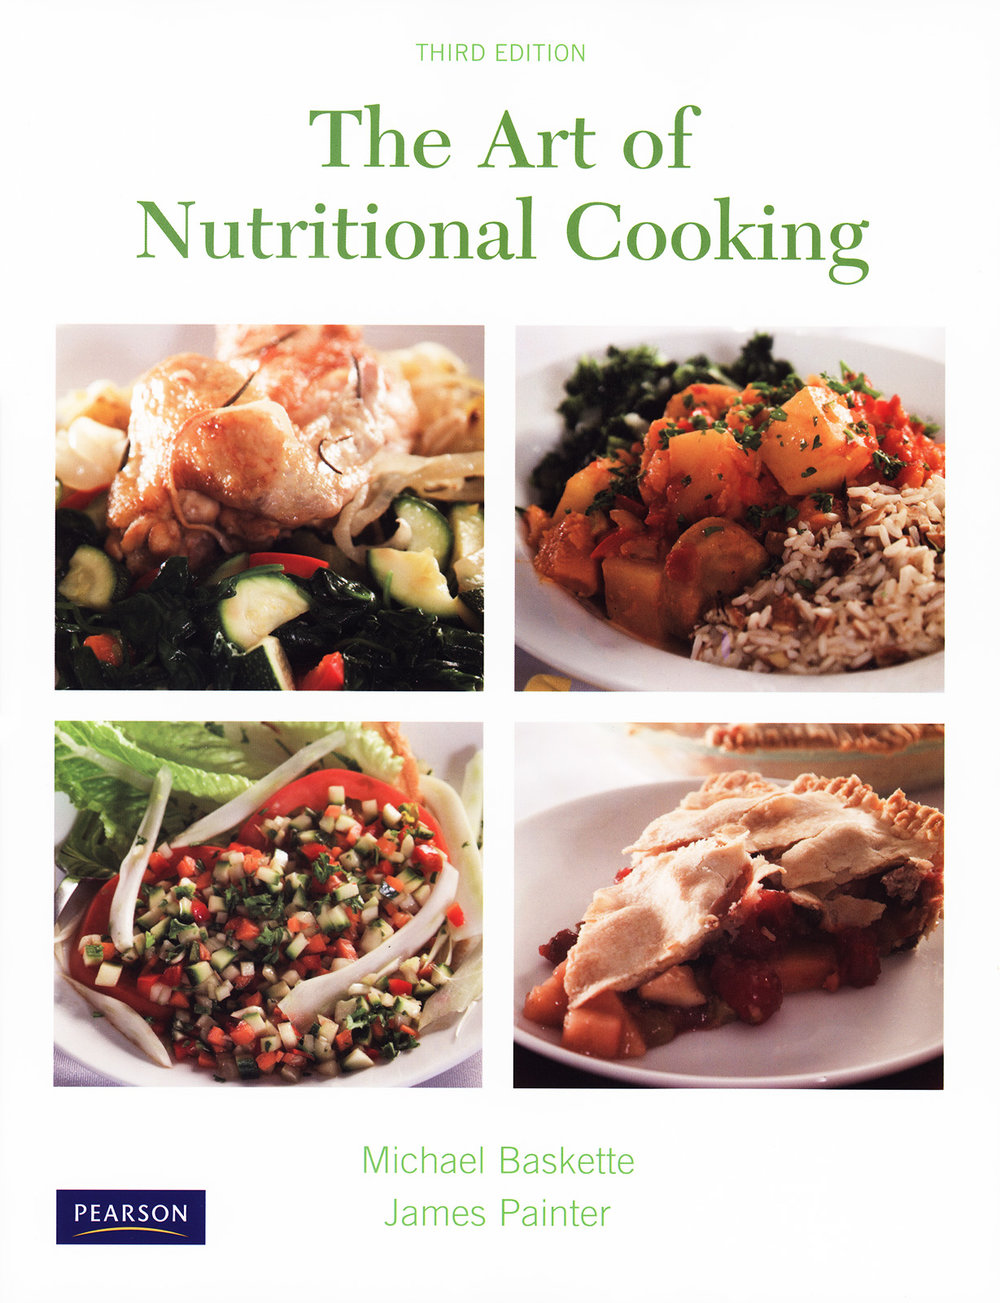 The Art of Nutritional Cooking